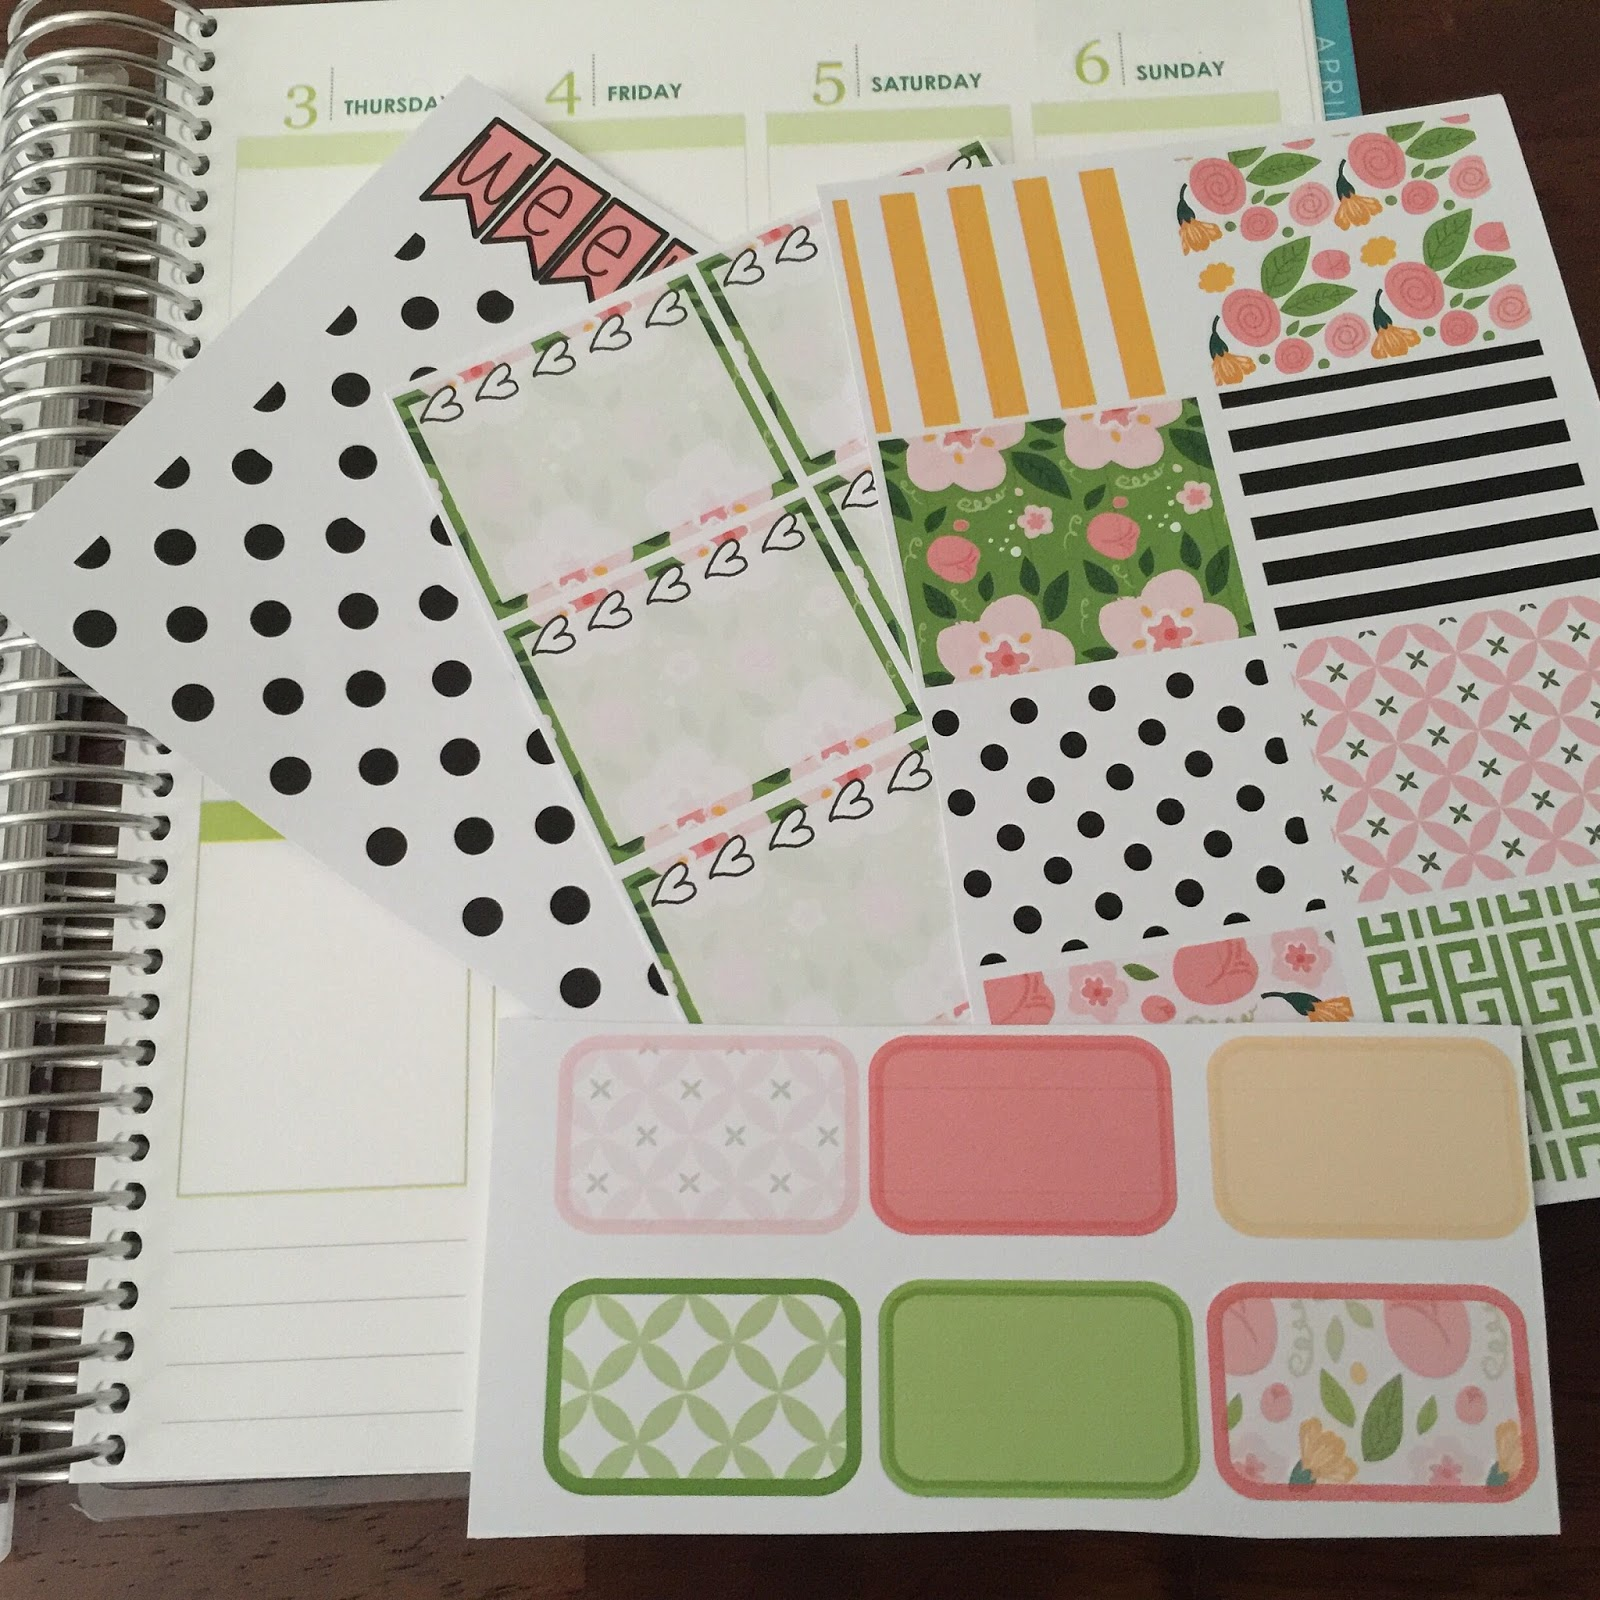 The Holladay Life How To Make Your Own Erin Condren Weekly - Make your own decal kit